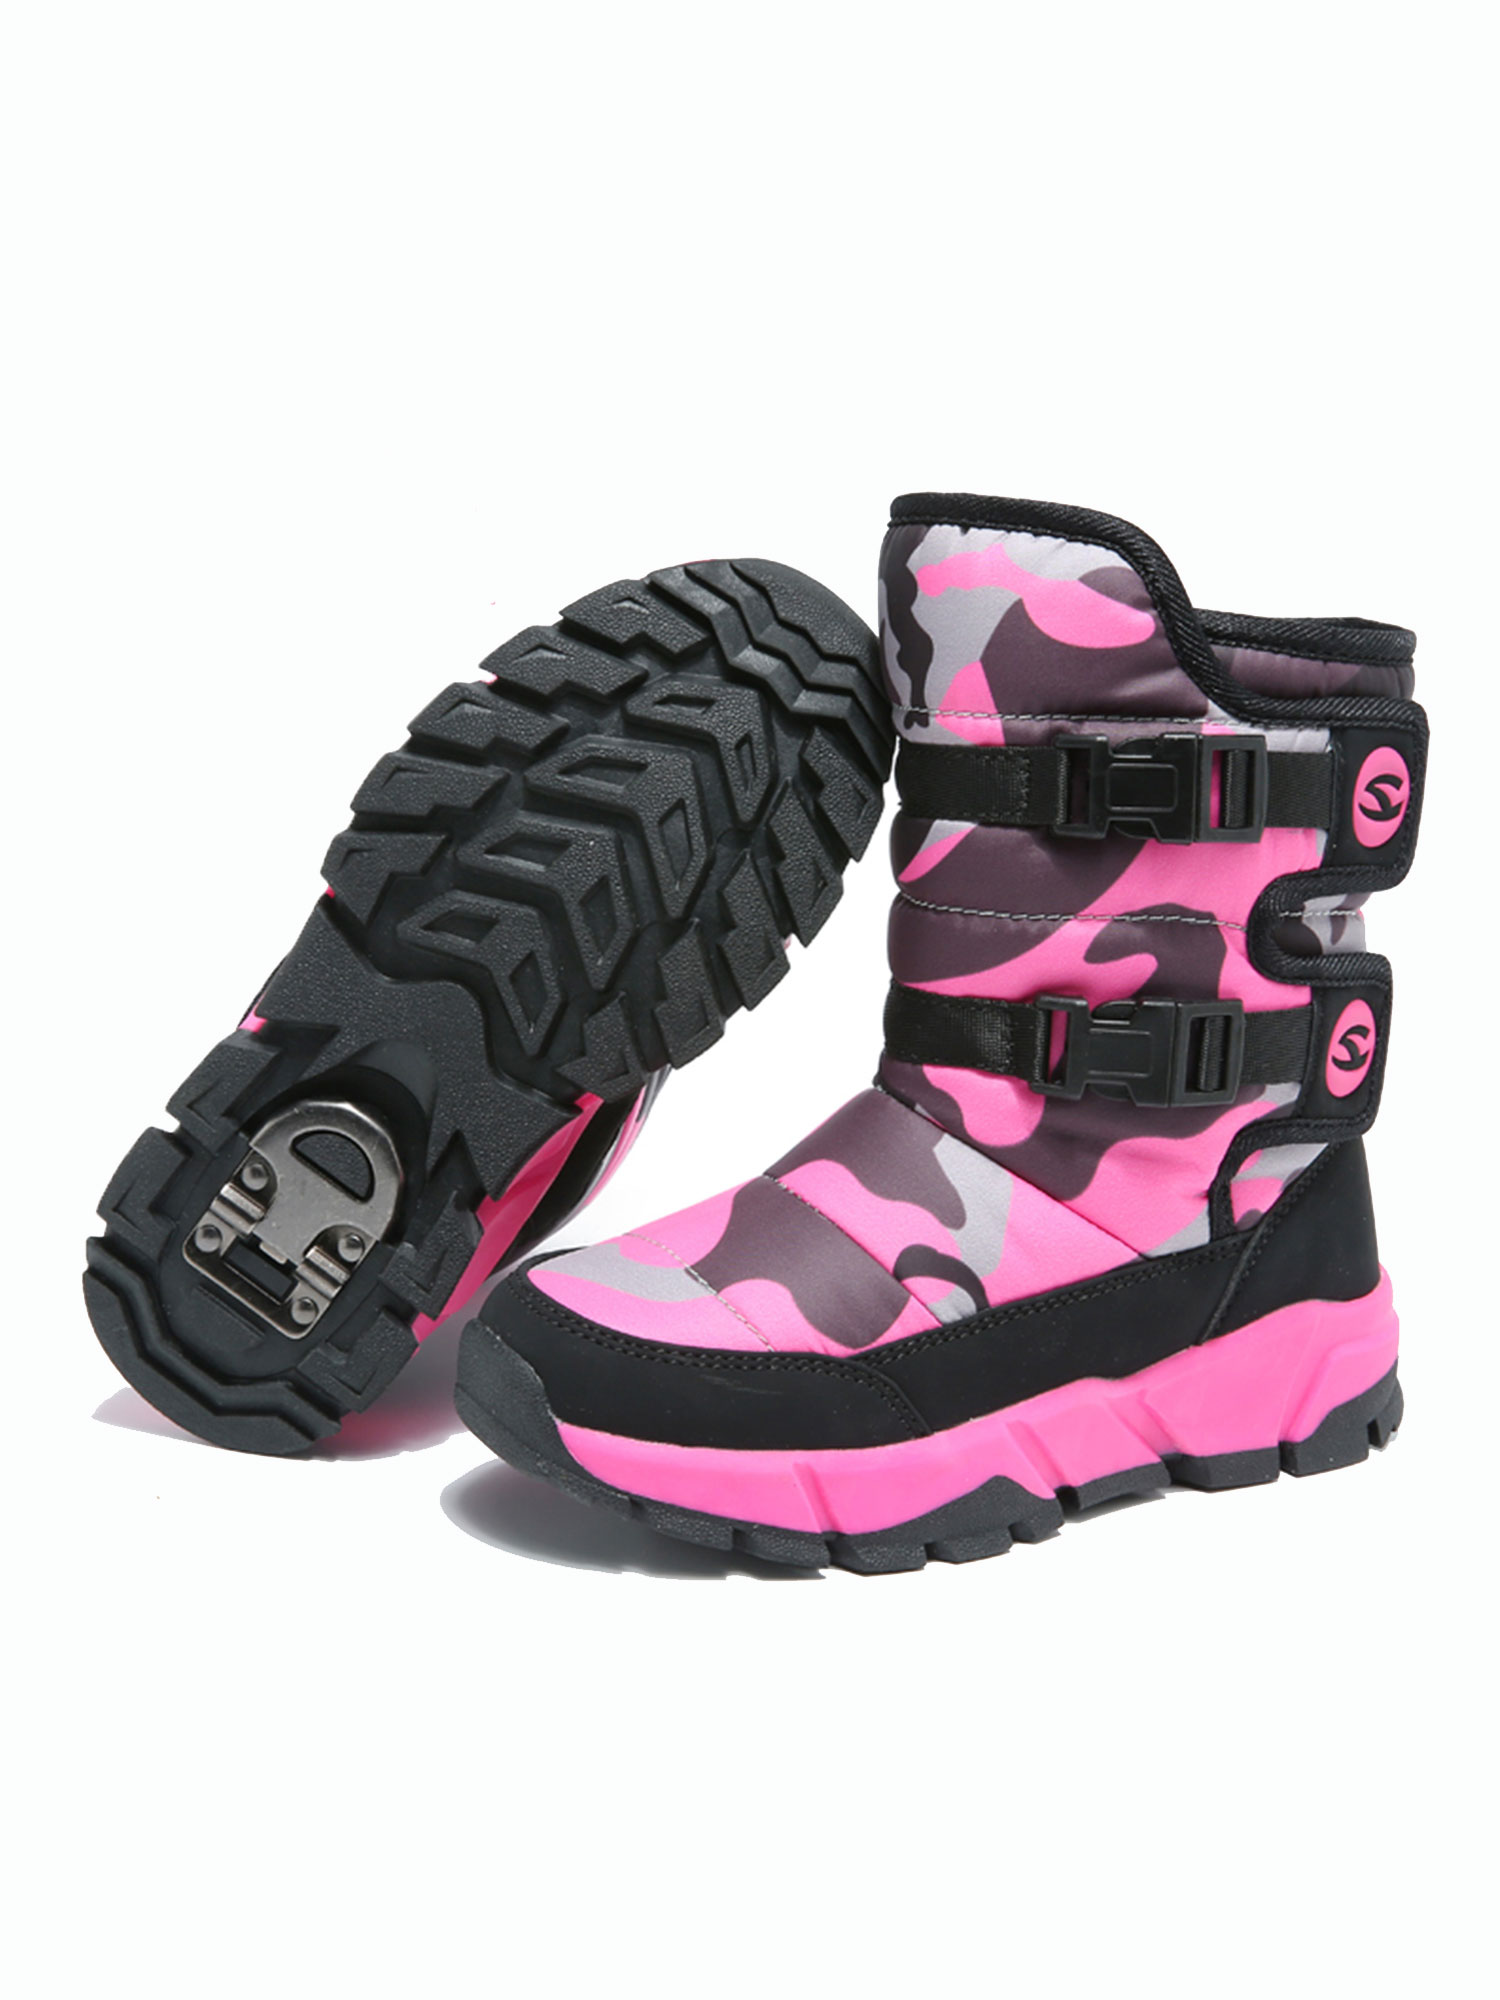 Snow Boots for Boys and Girls Waterproof Slip Resistant Winter Warm Shoes (Toddler/Little Kid/Big Kid)